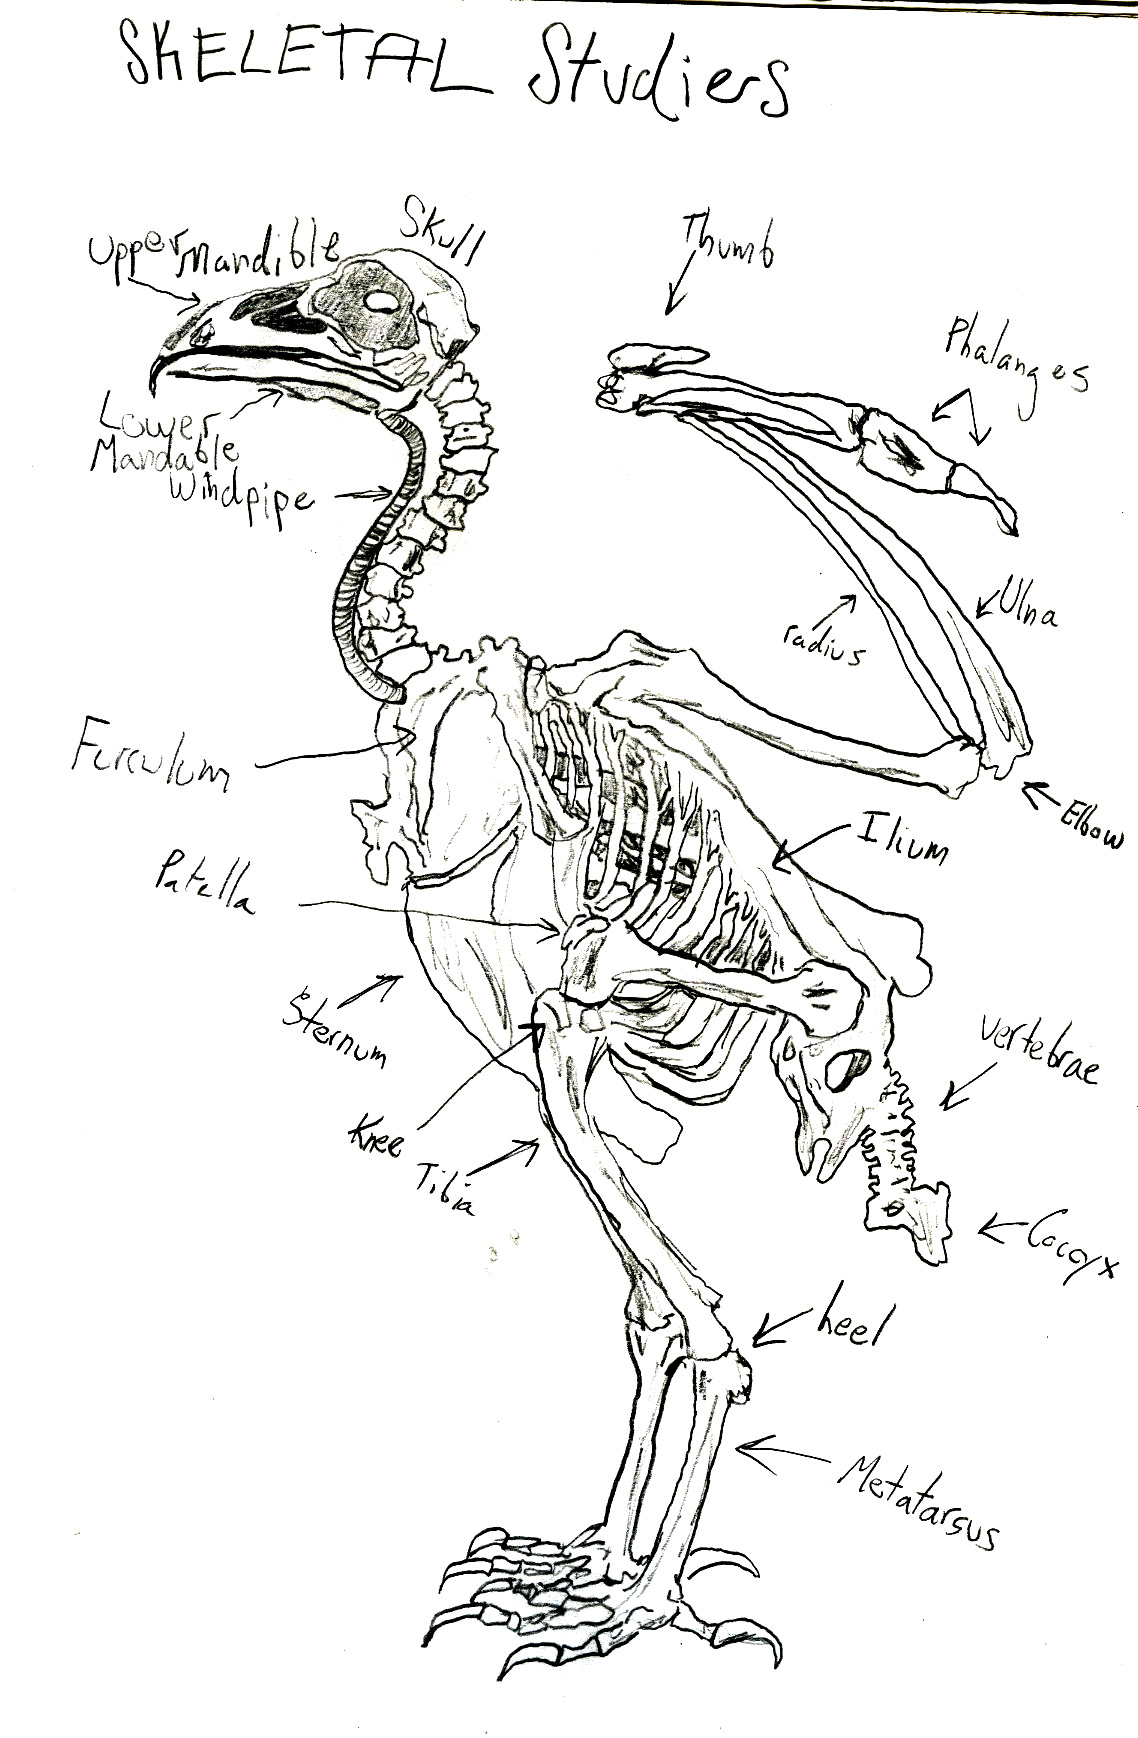 eagle anatomy diagram network template word labeled of a bald cow